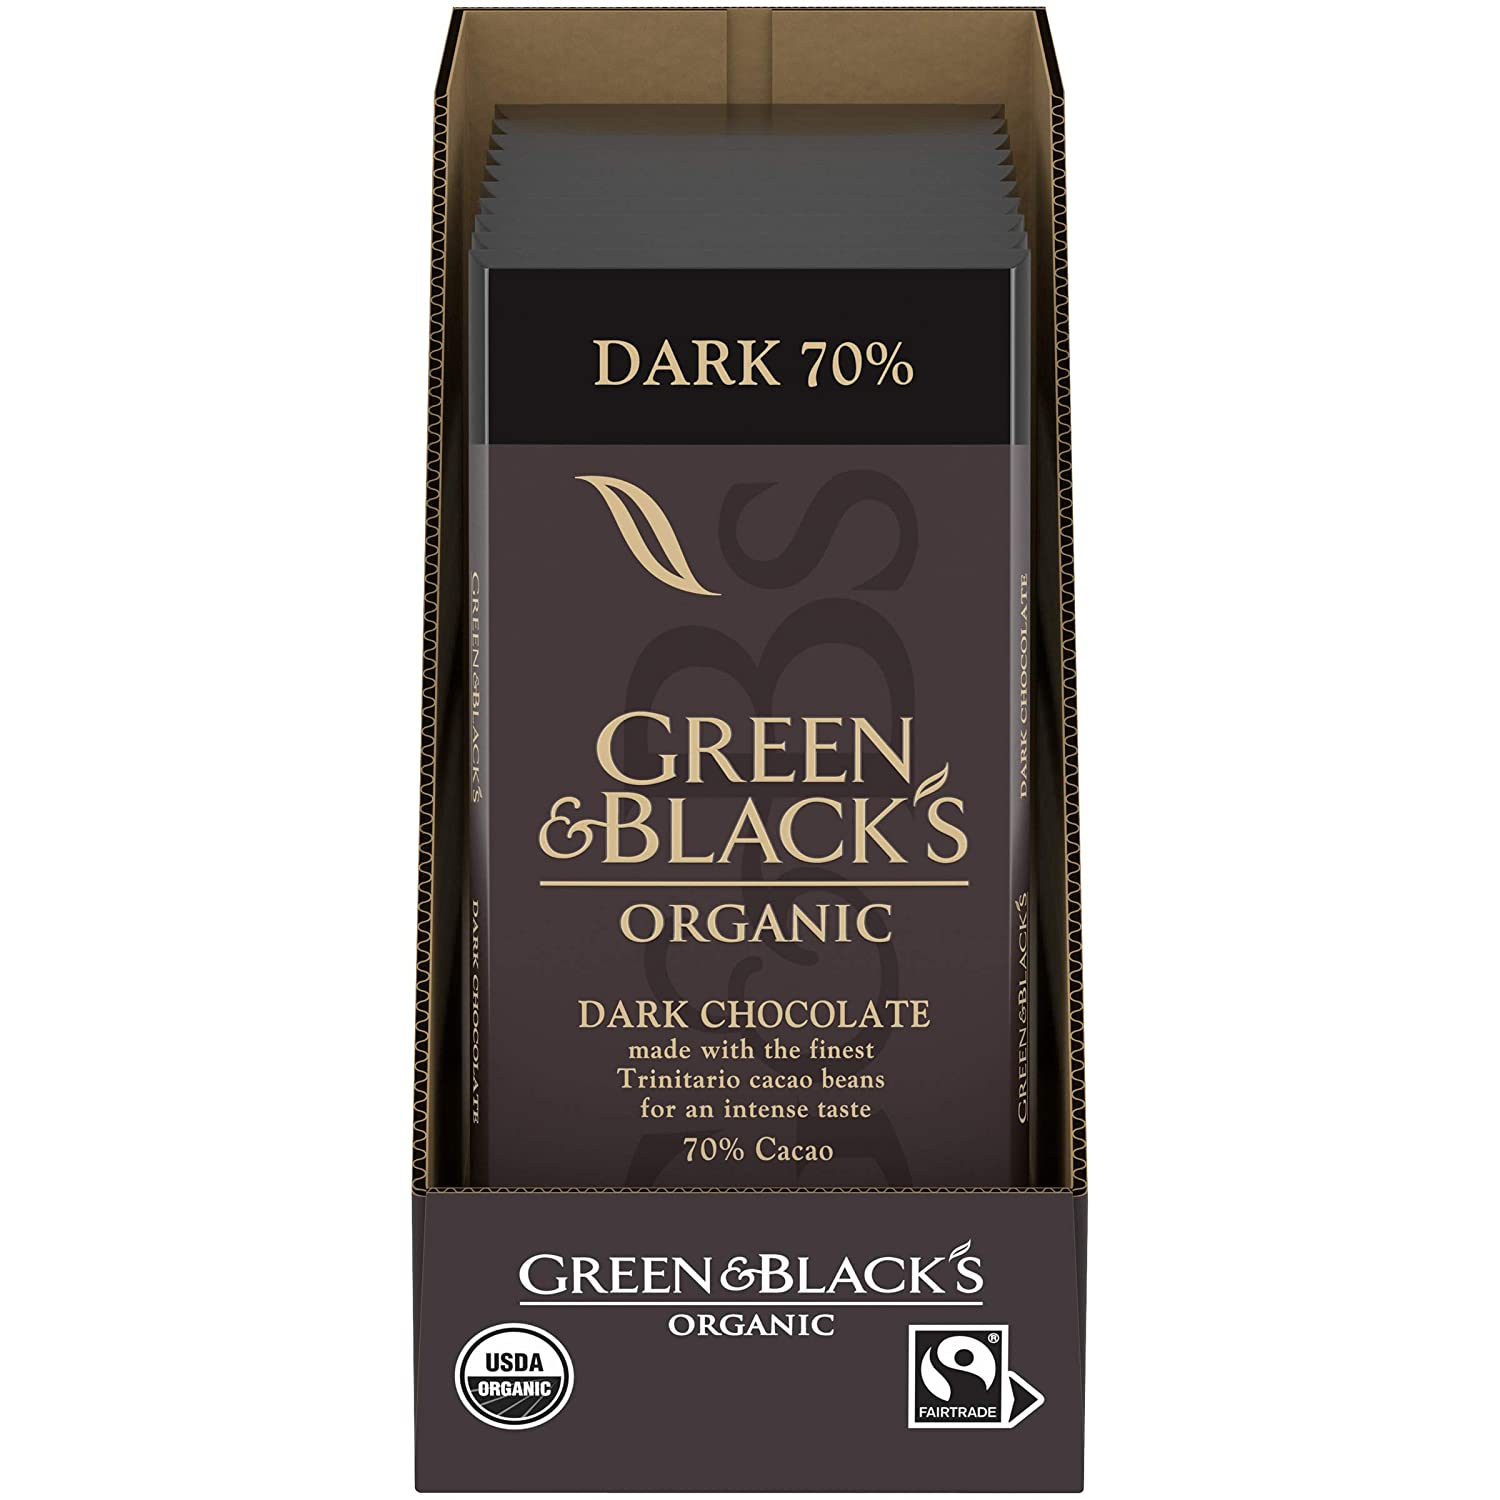 Green & Black's Organic Dark Chocolate Bar, 70% Cacao, Easter Chocolate, 10 - 3.17 oz Bars